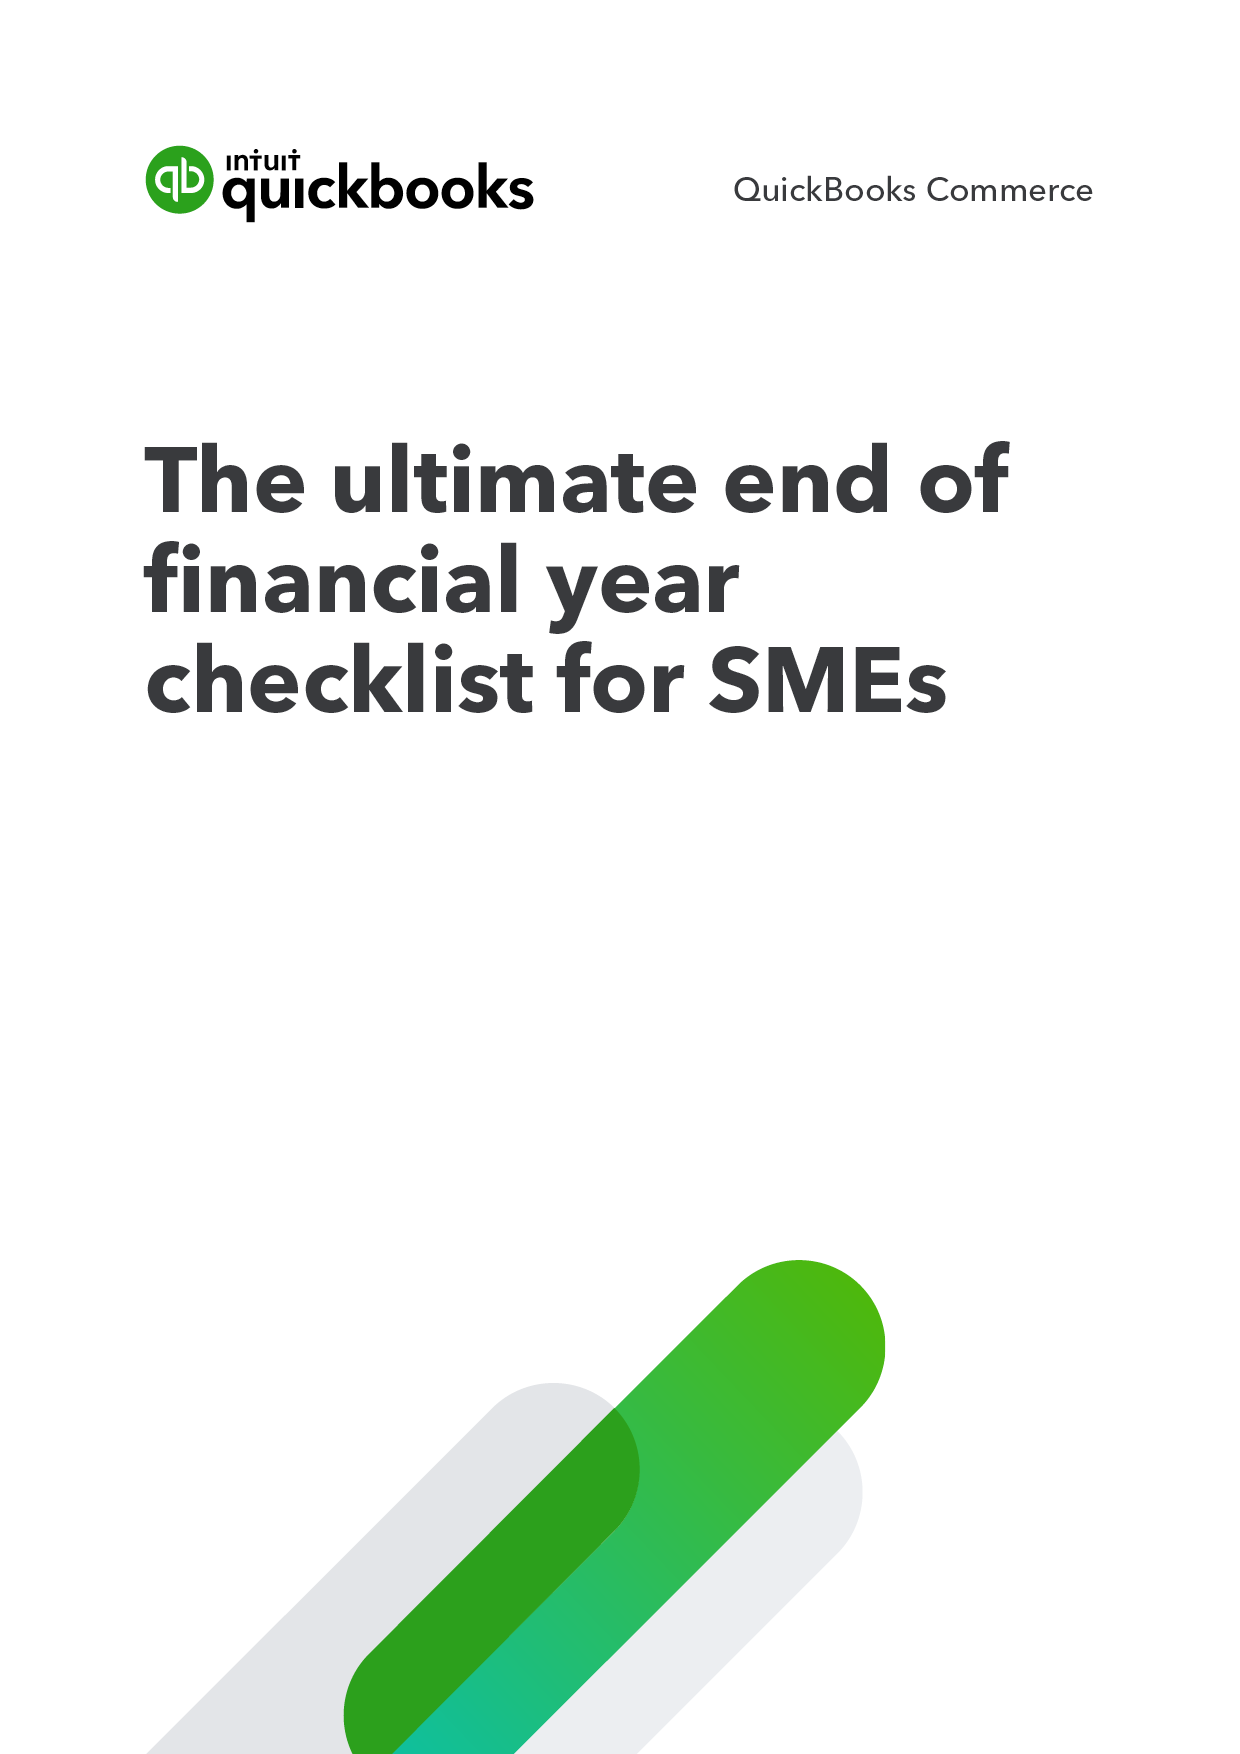 qbc--ultimate-end-of-financial-year-checklist-for-smes